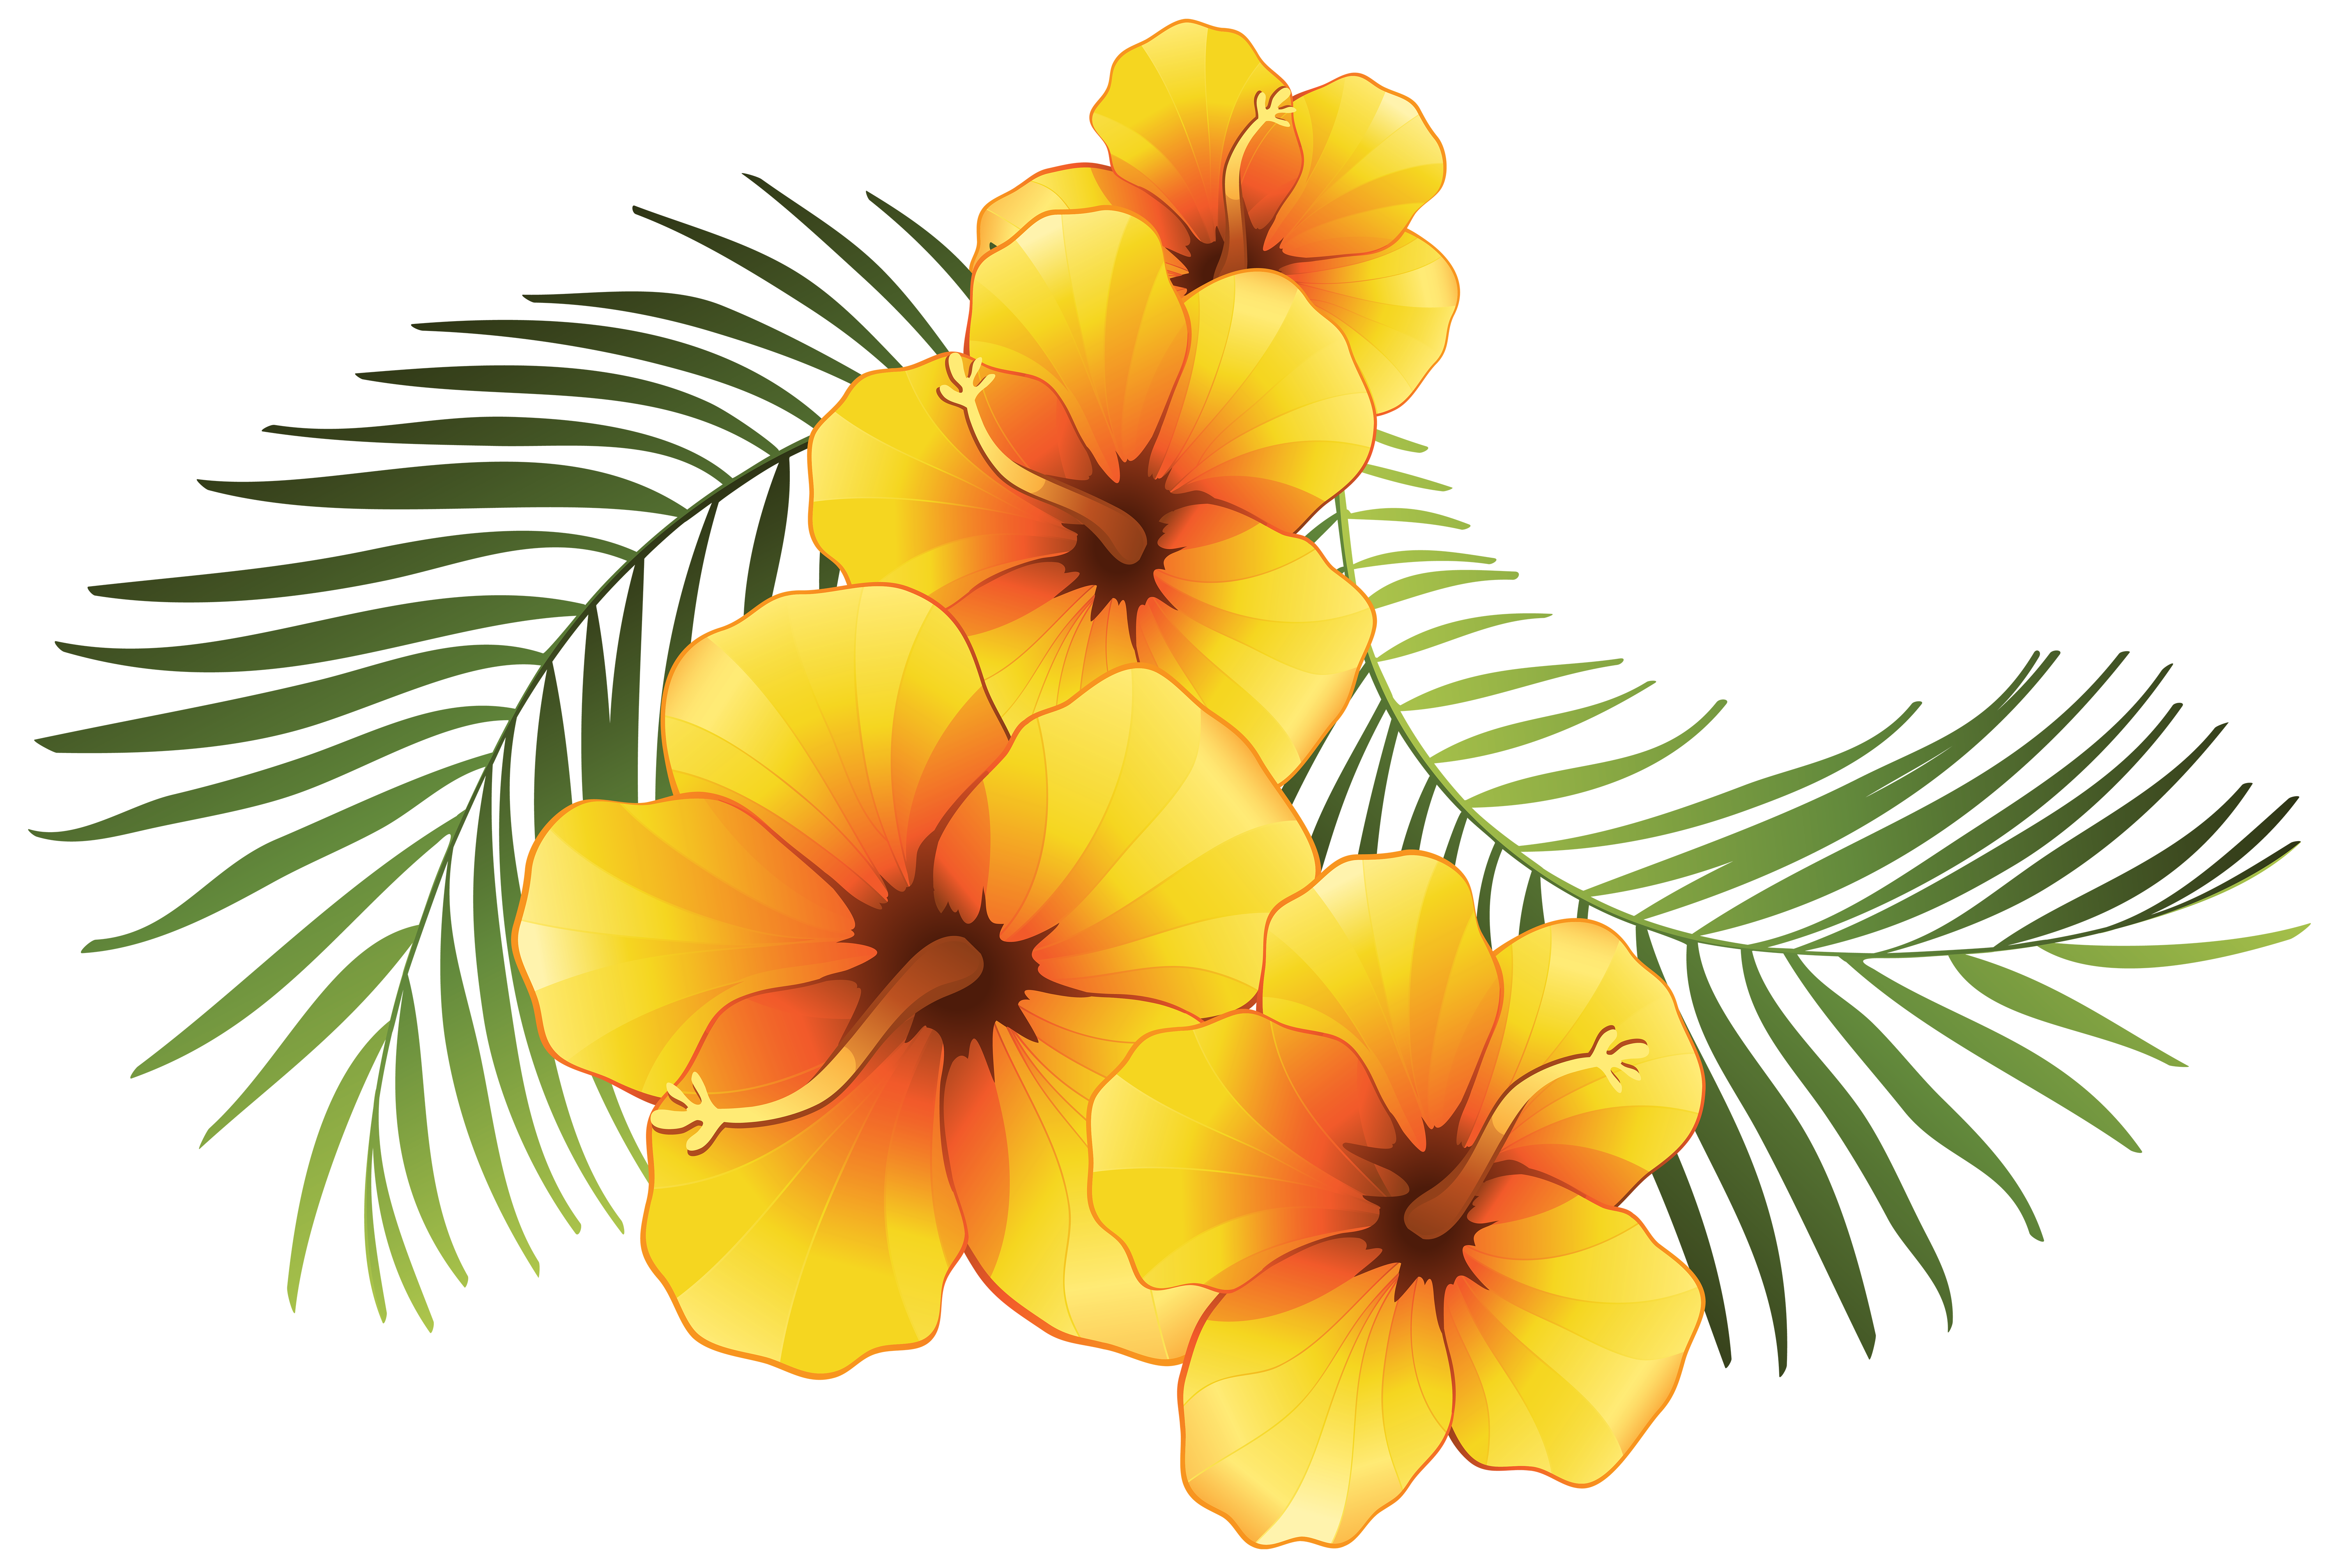 Hawaiin sun clipart png download Plumeria Clipart at GetDrawings.com | Free for personal use Plumeria ... png download